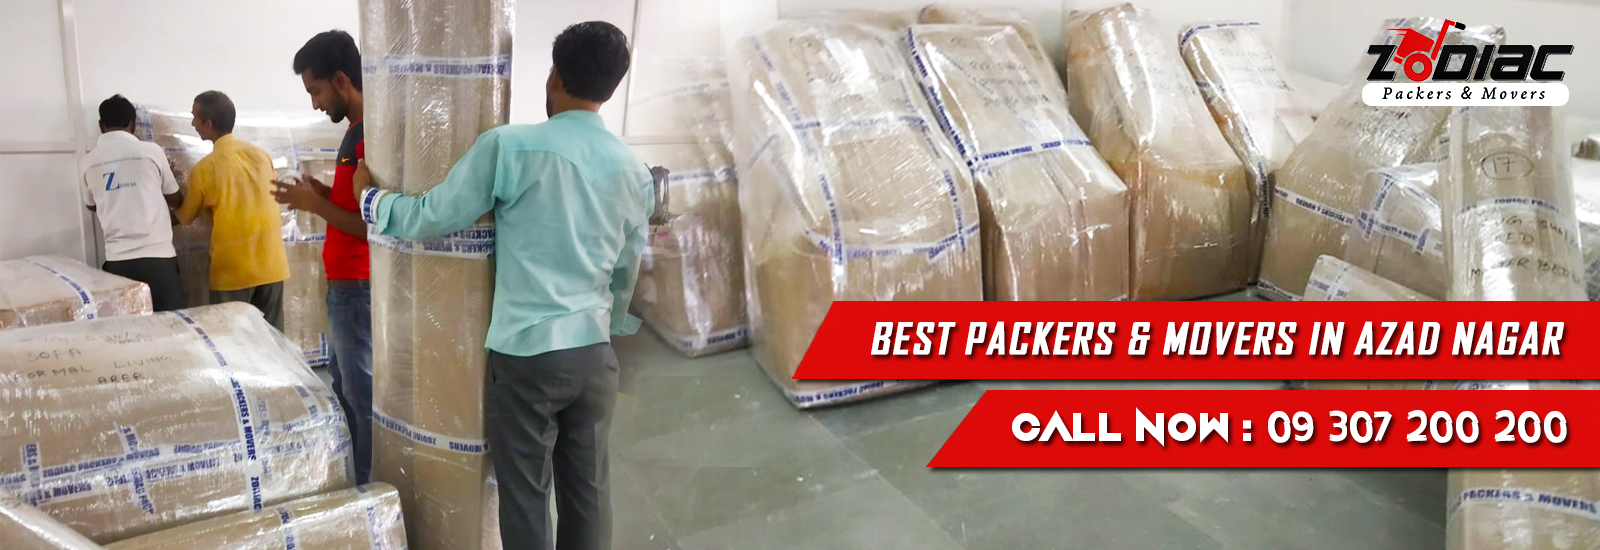 Packers and Movers in Azad Nagar